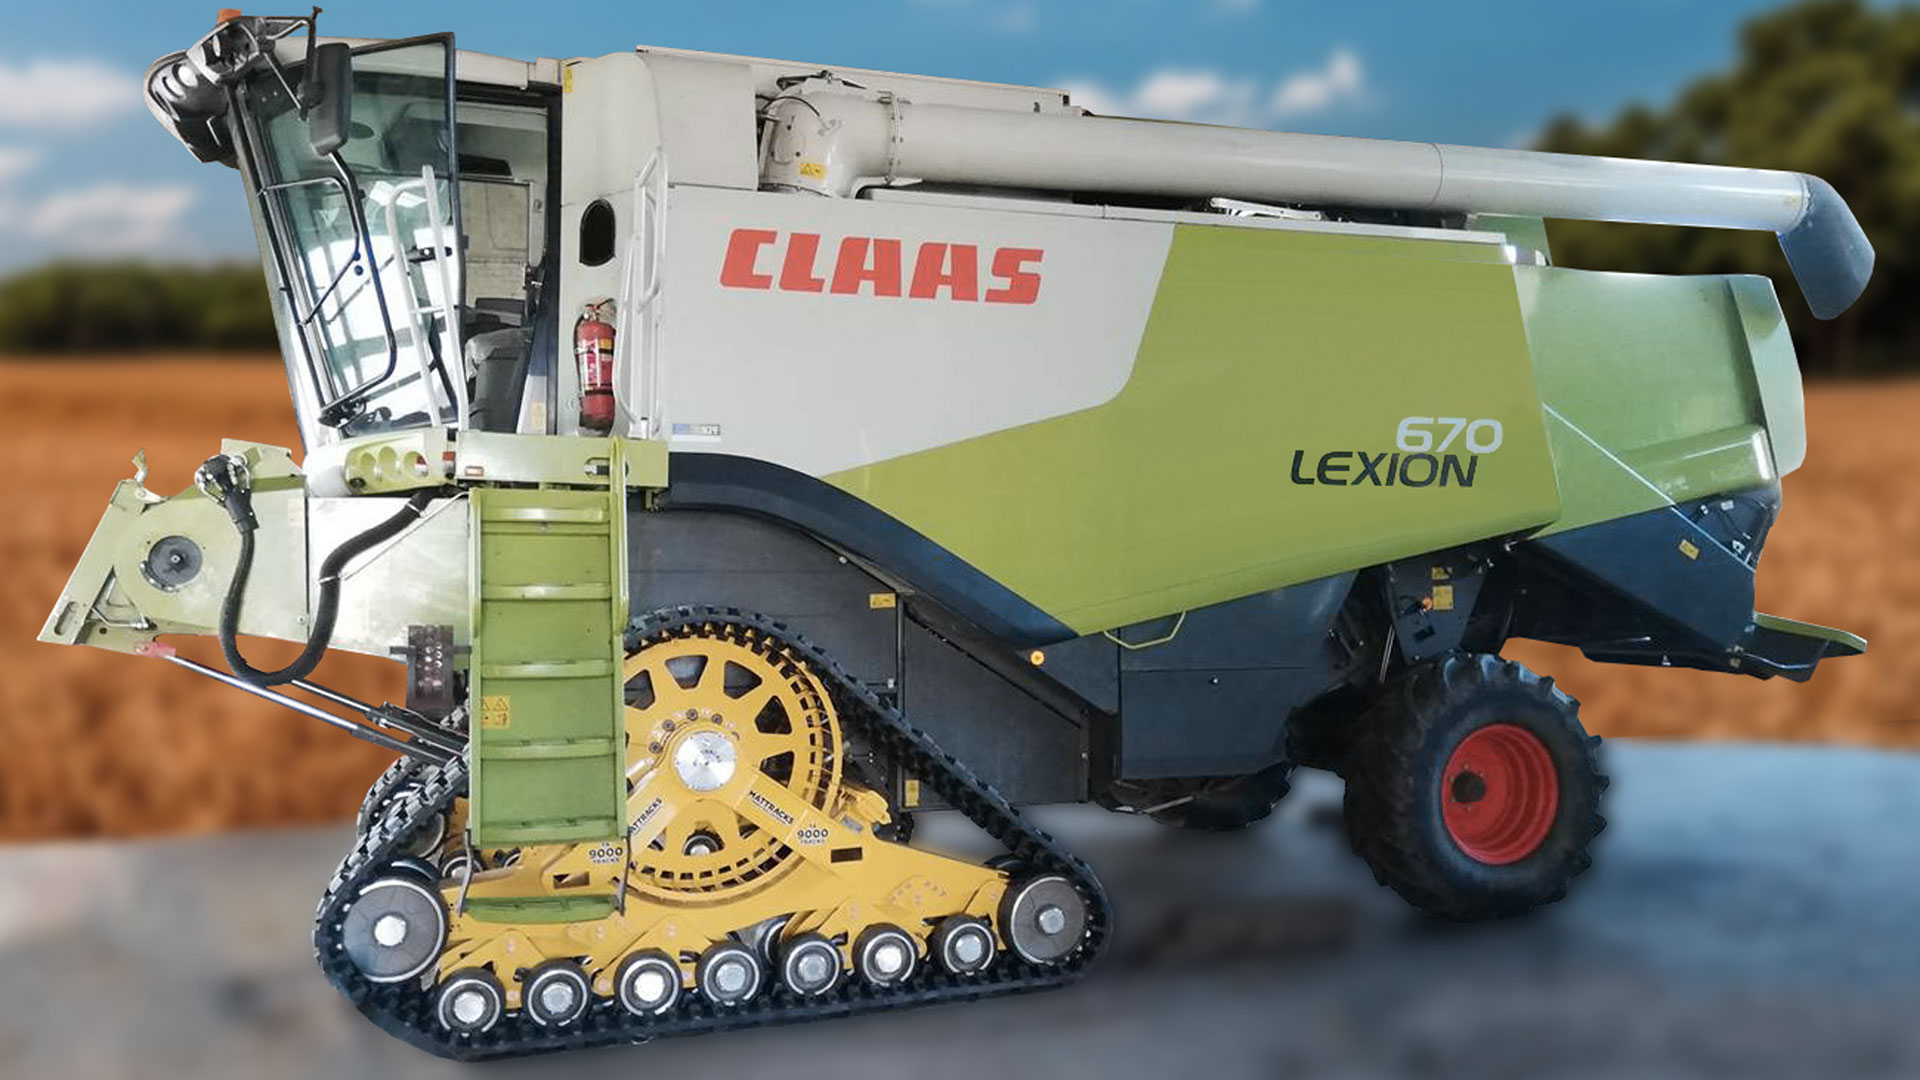 9090-J0 Series Tracks on a Claas Lexion 670